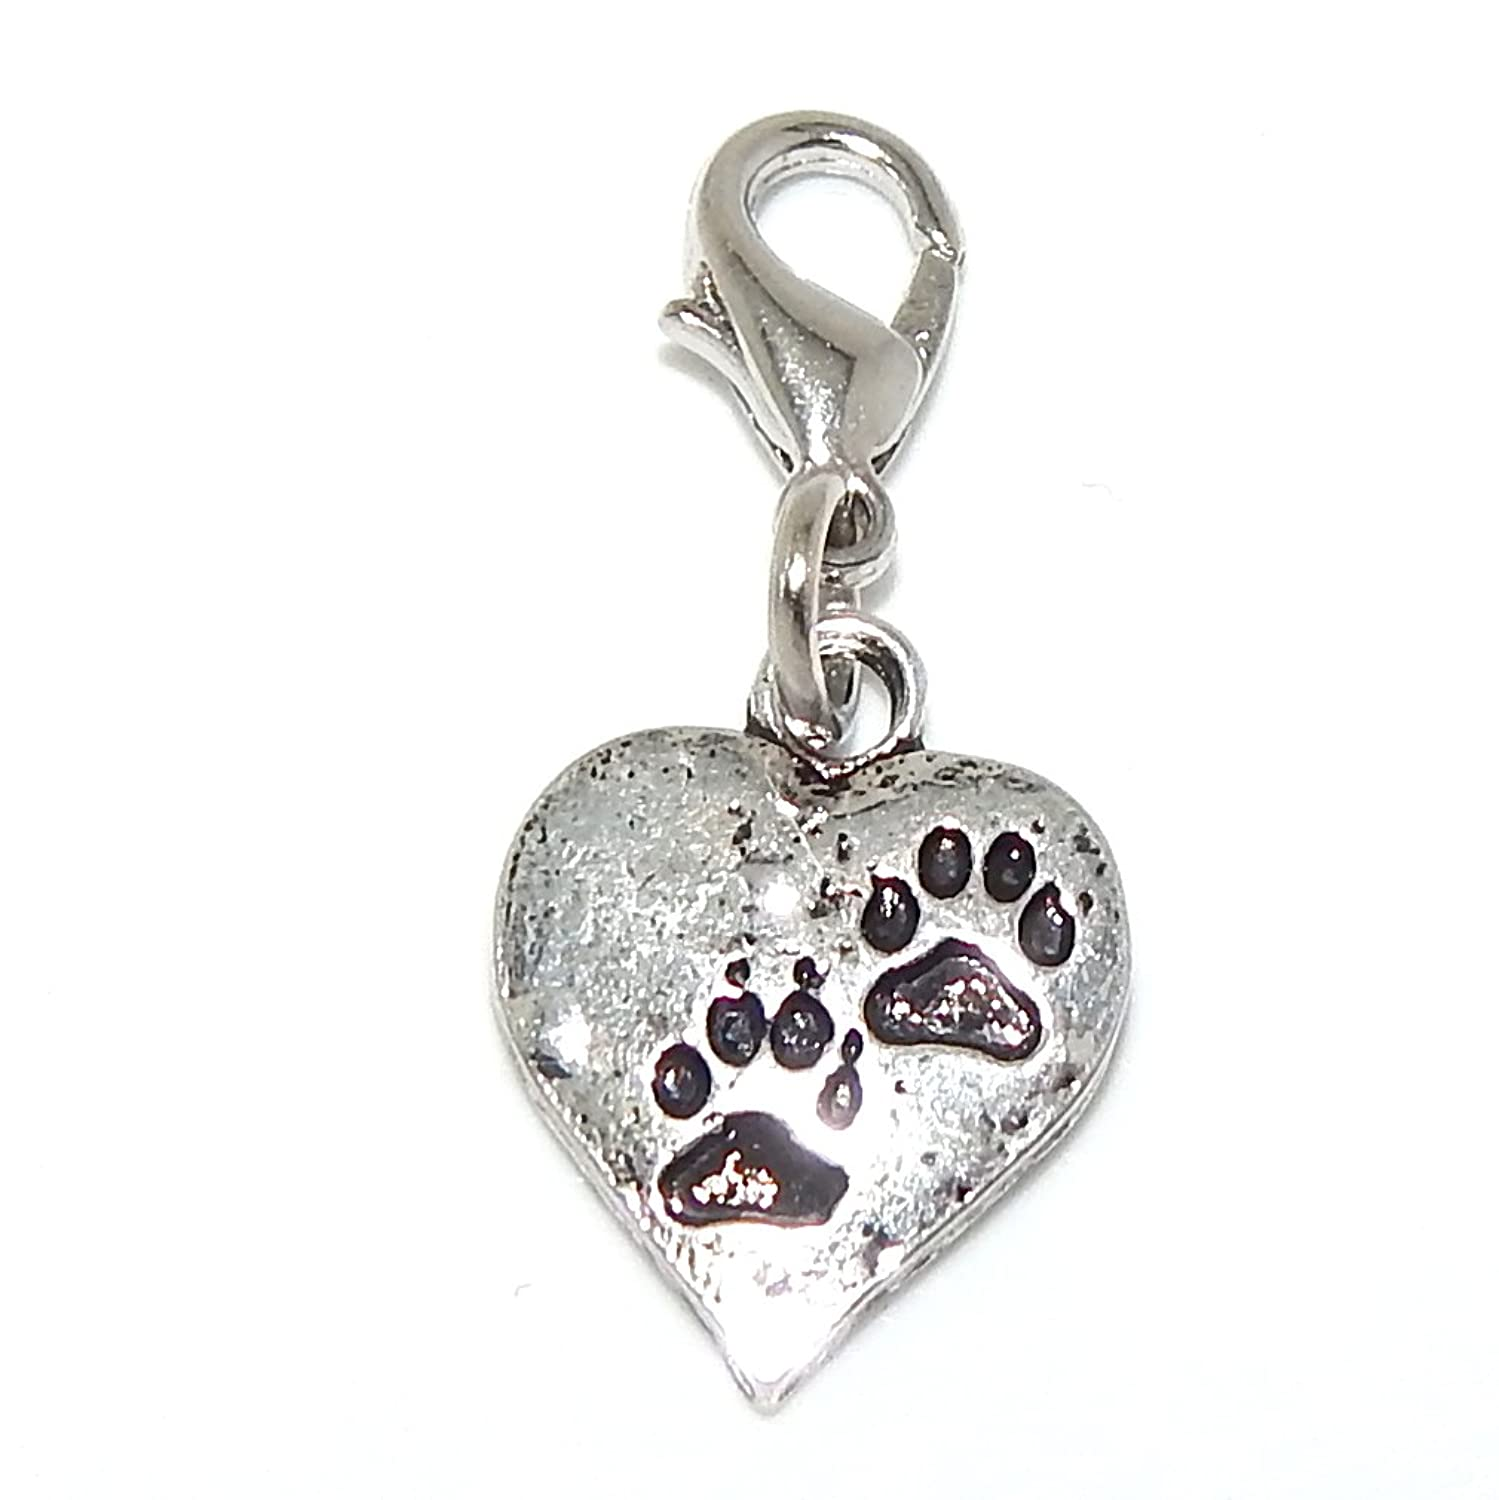 """cheap Pro Jewelry Dangling """"Paw Prints on Heart"""" Clip-on Bead for Charm Bracelet 29100"""